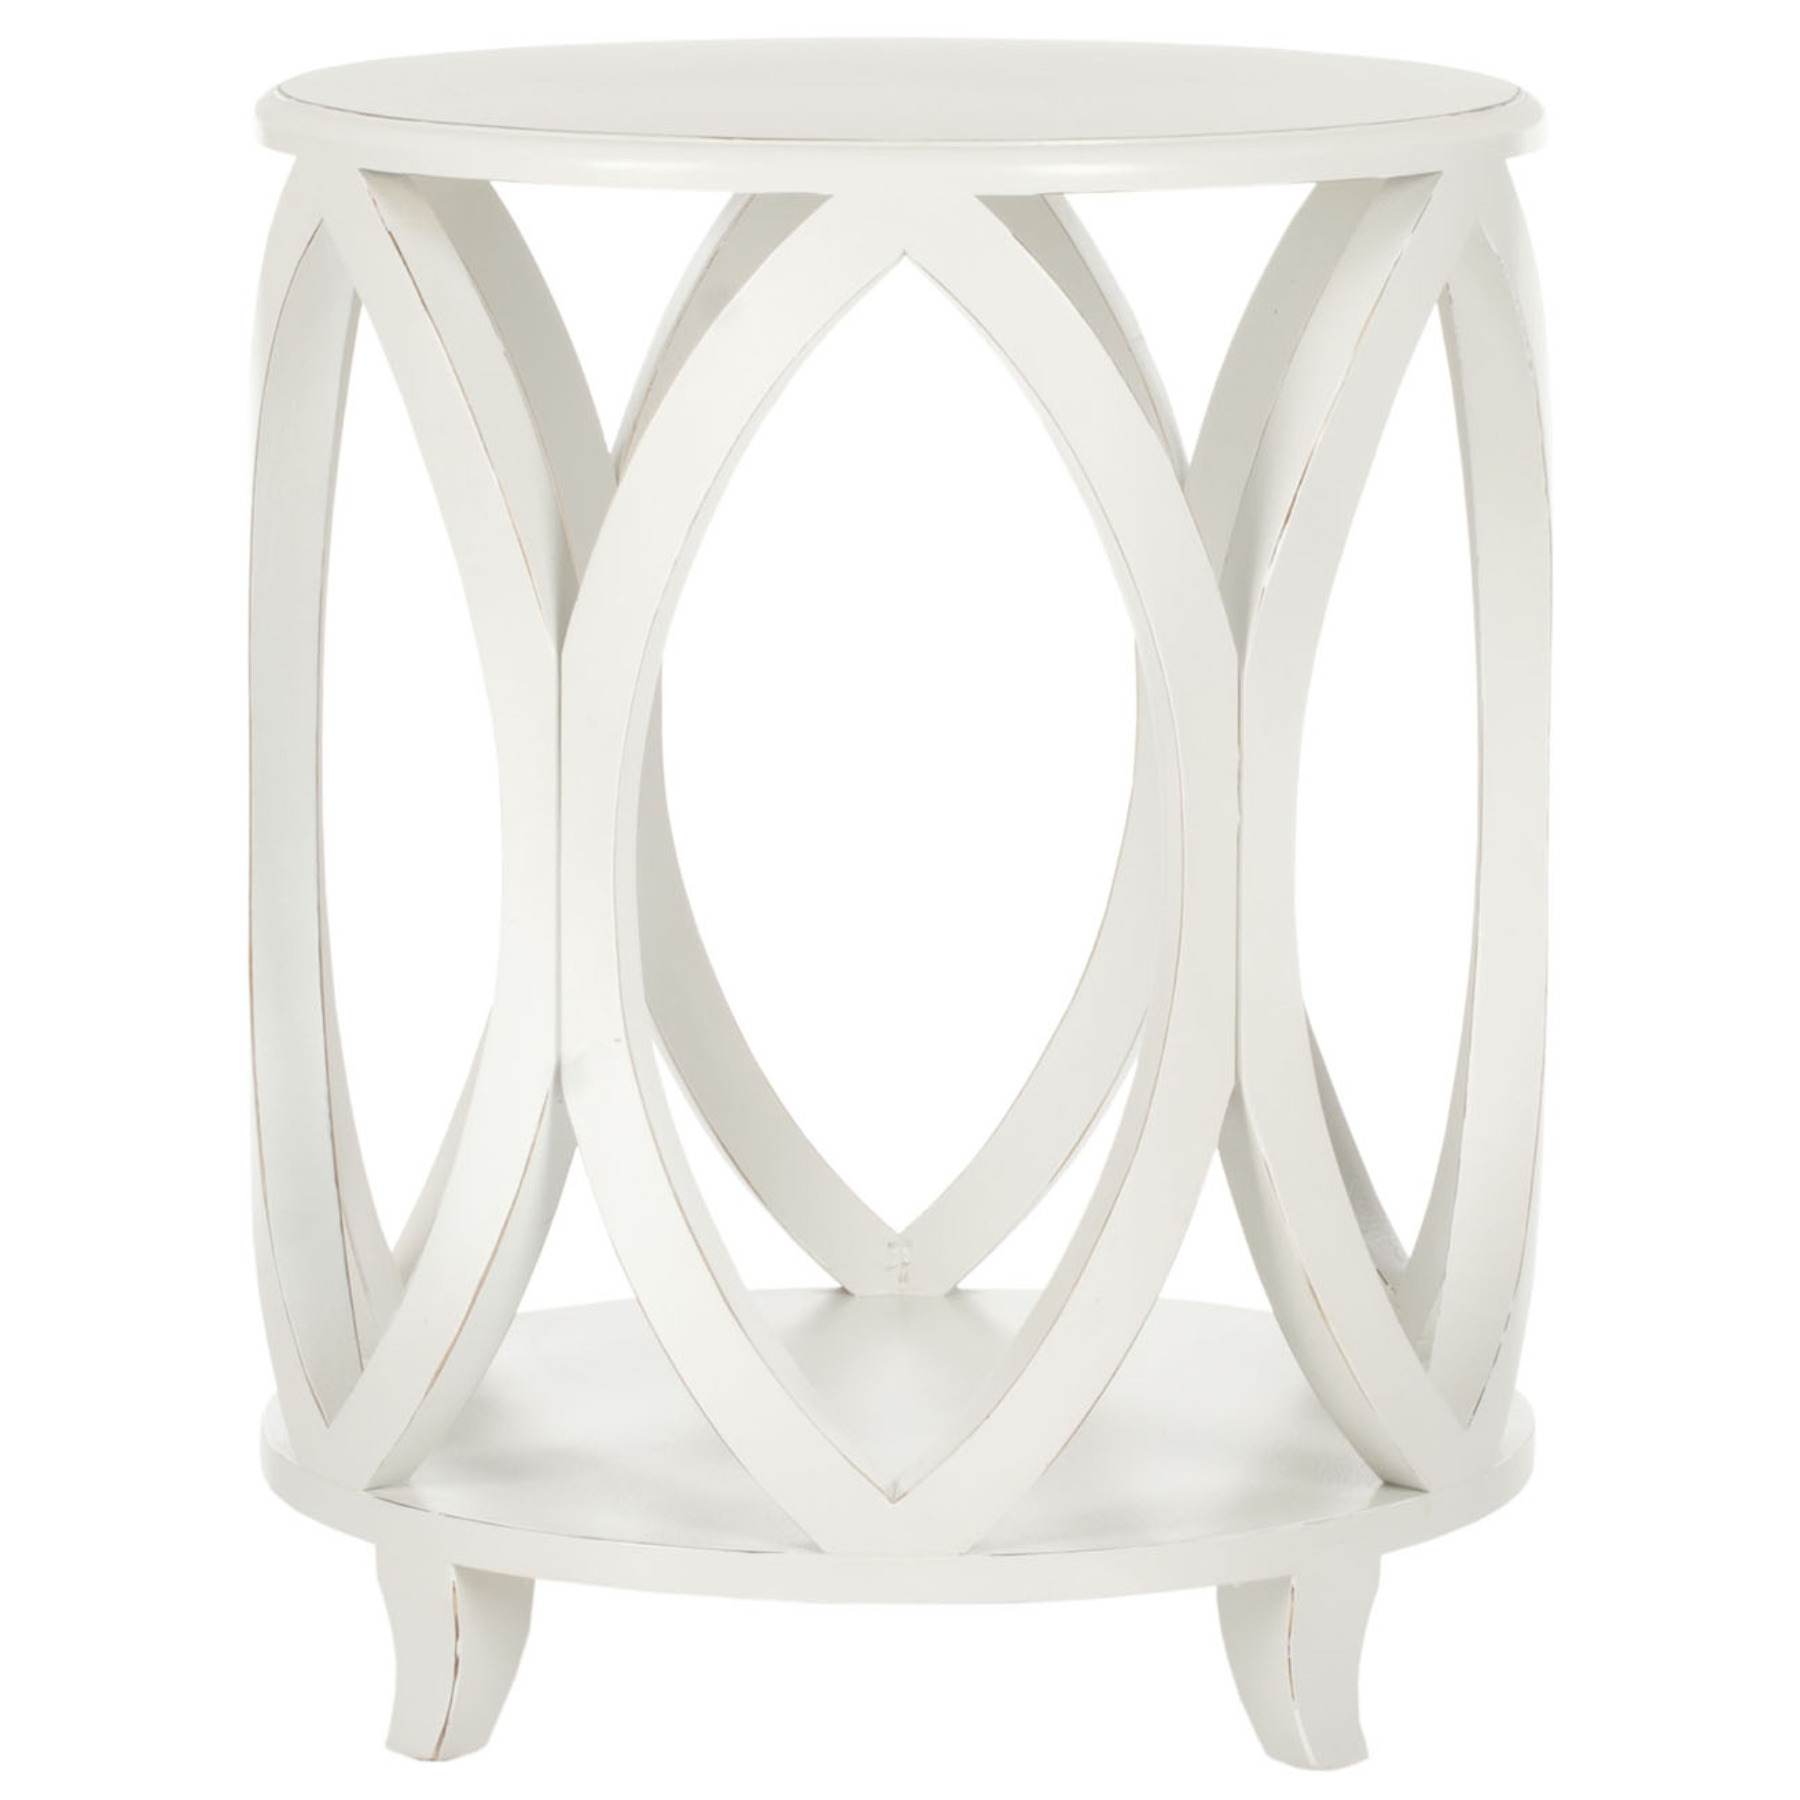 end table distressed off white uptownartsgranburytx safavieh janika round accent sauder milled cherry mirror side living room antique that folds out unfinished tables floral